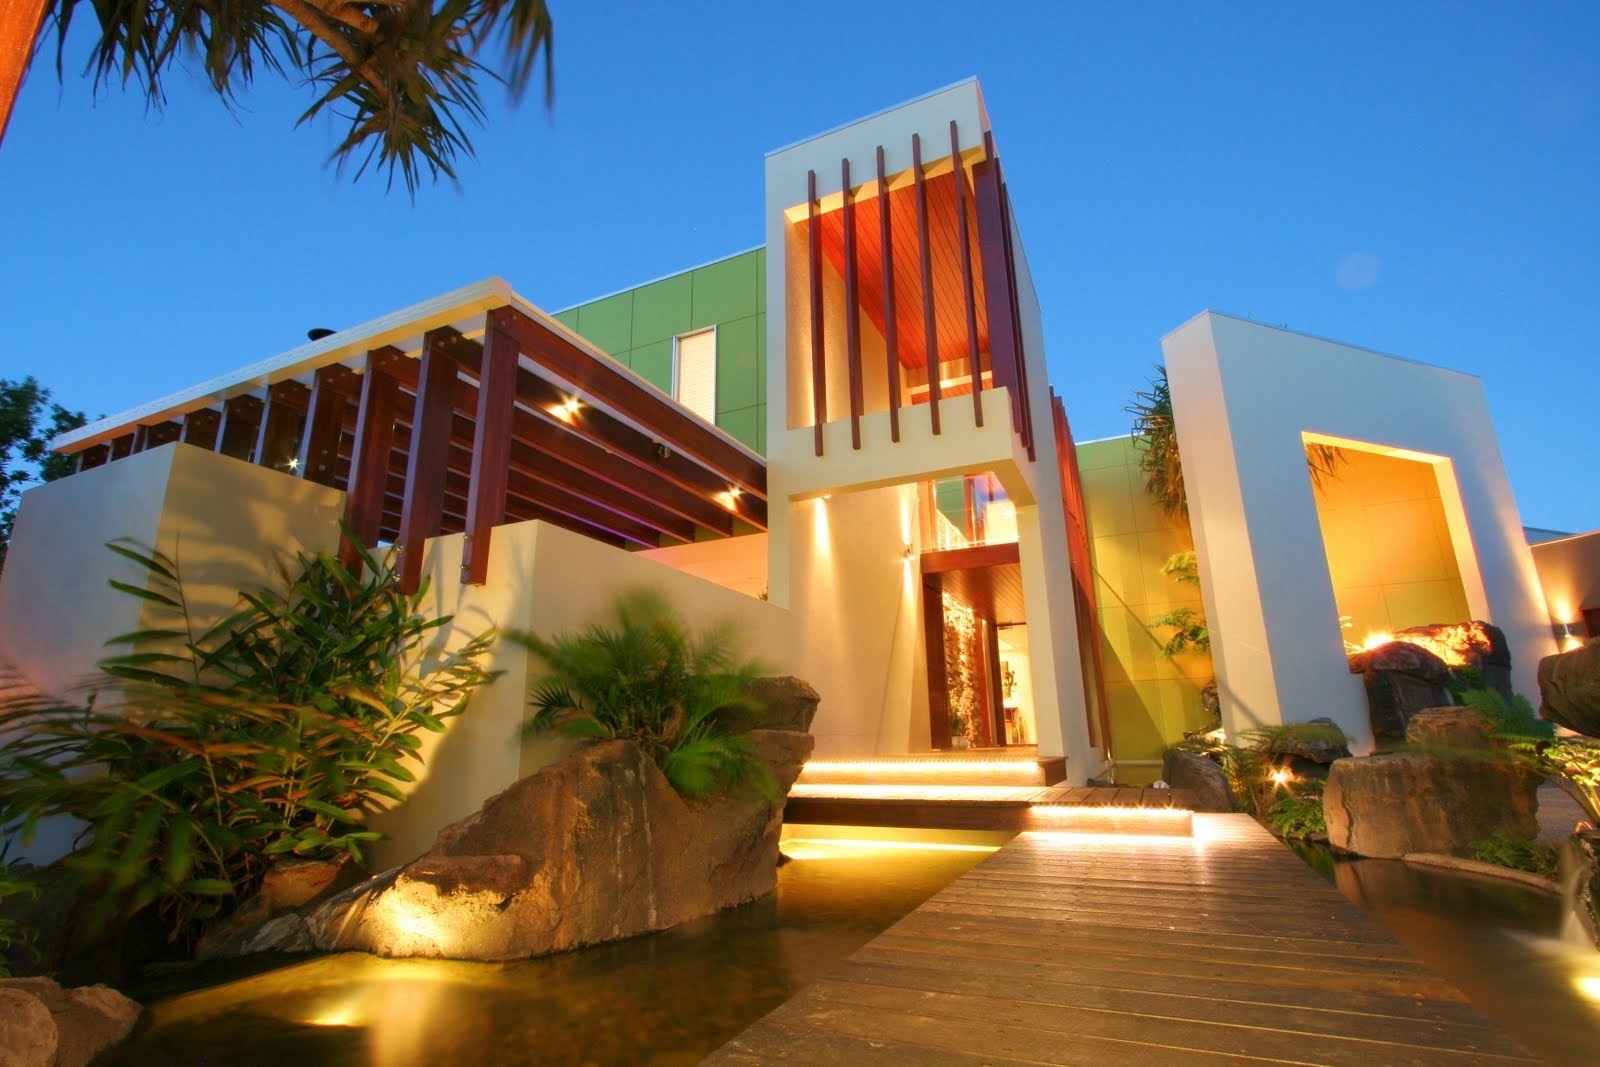 Exotic Modern House Exterior Plans (Image 6 of 27)